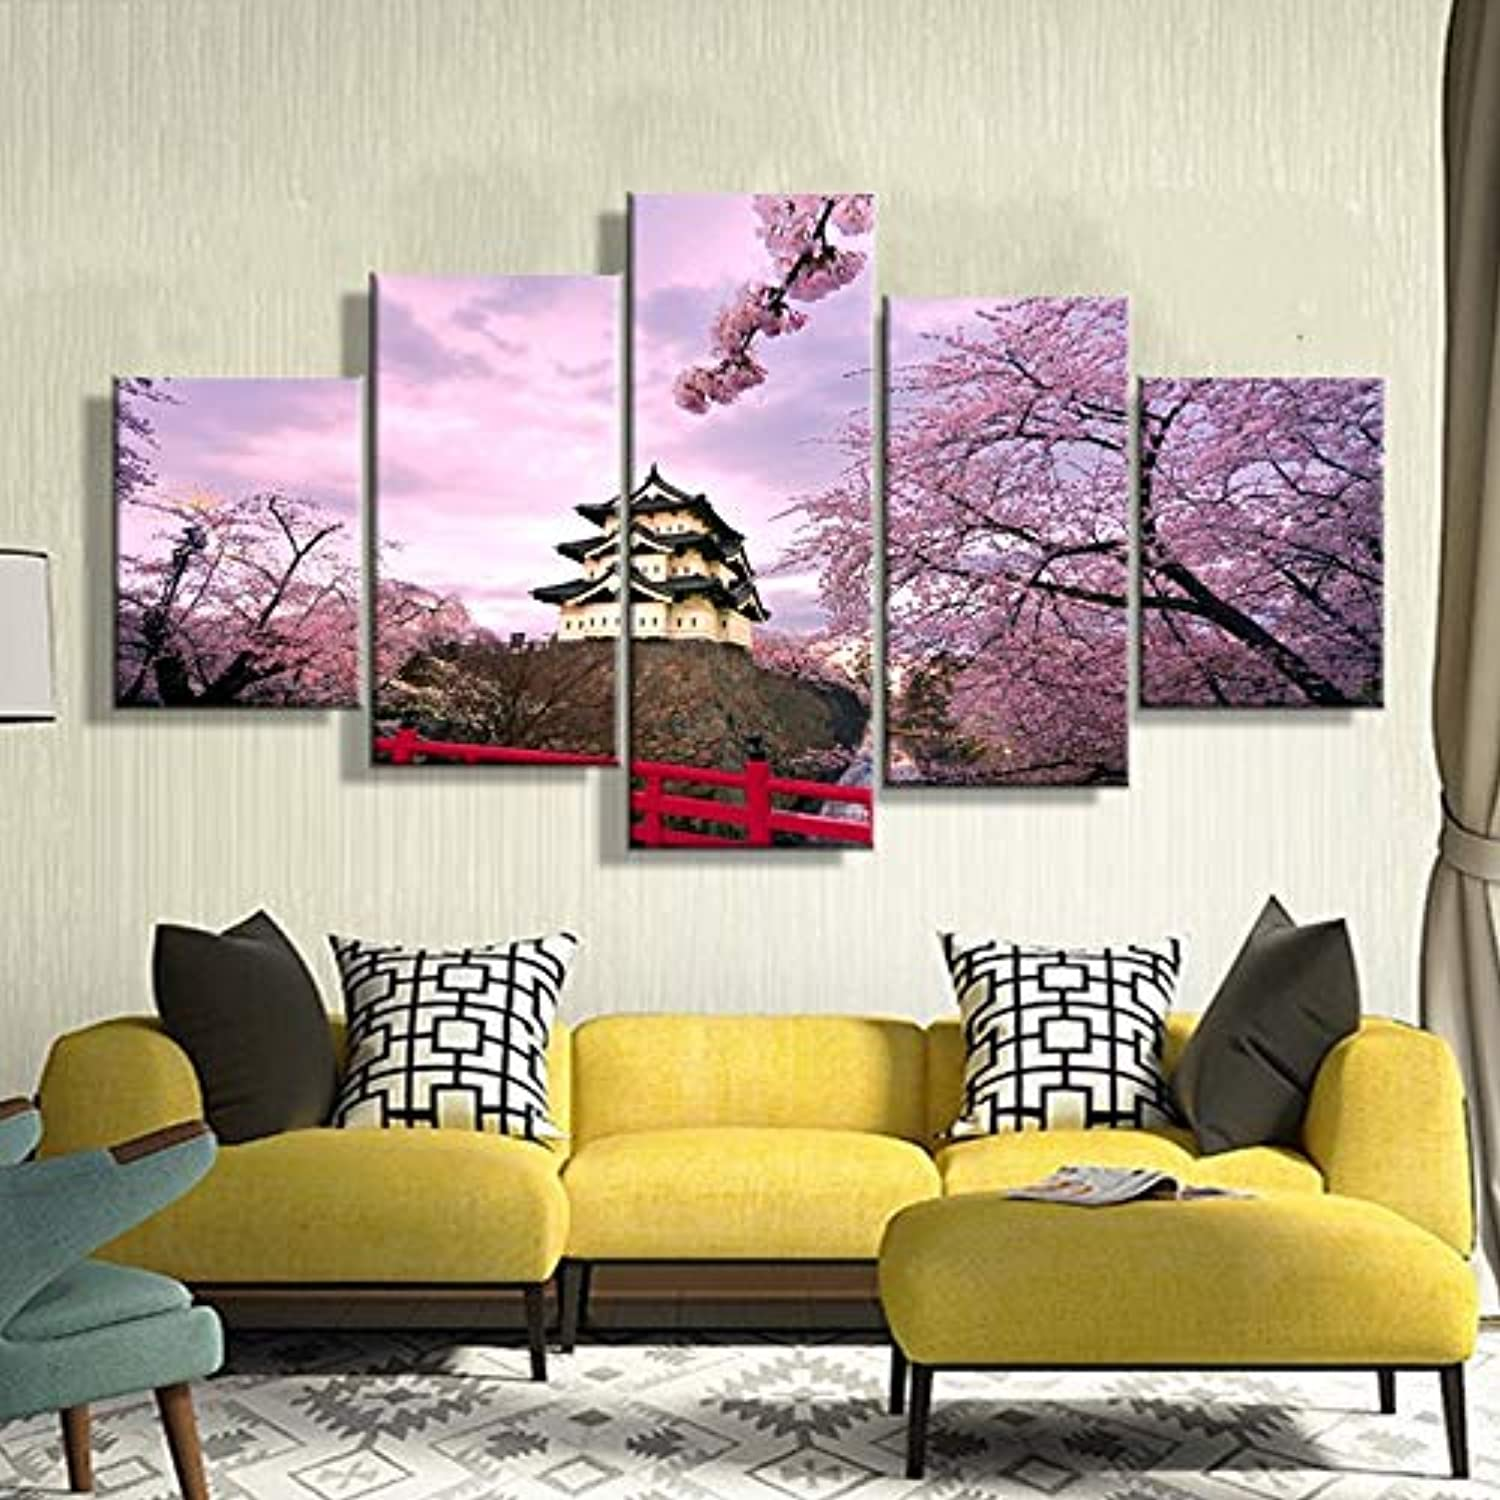 Home Decoration Picture Vintage 5 Panel Cherry Blossom Japan Framework Paintings On Canvas Posters and Prints On The Wall